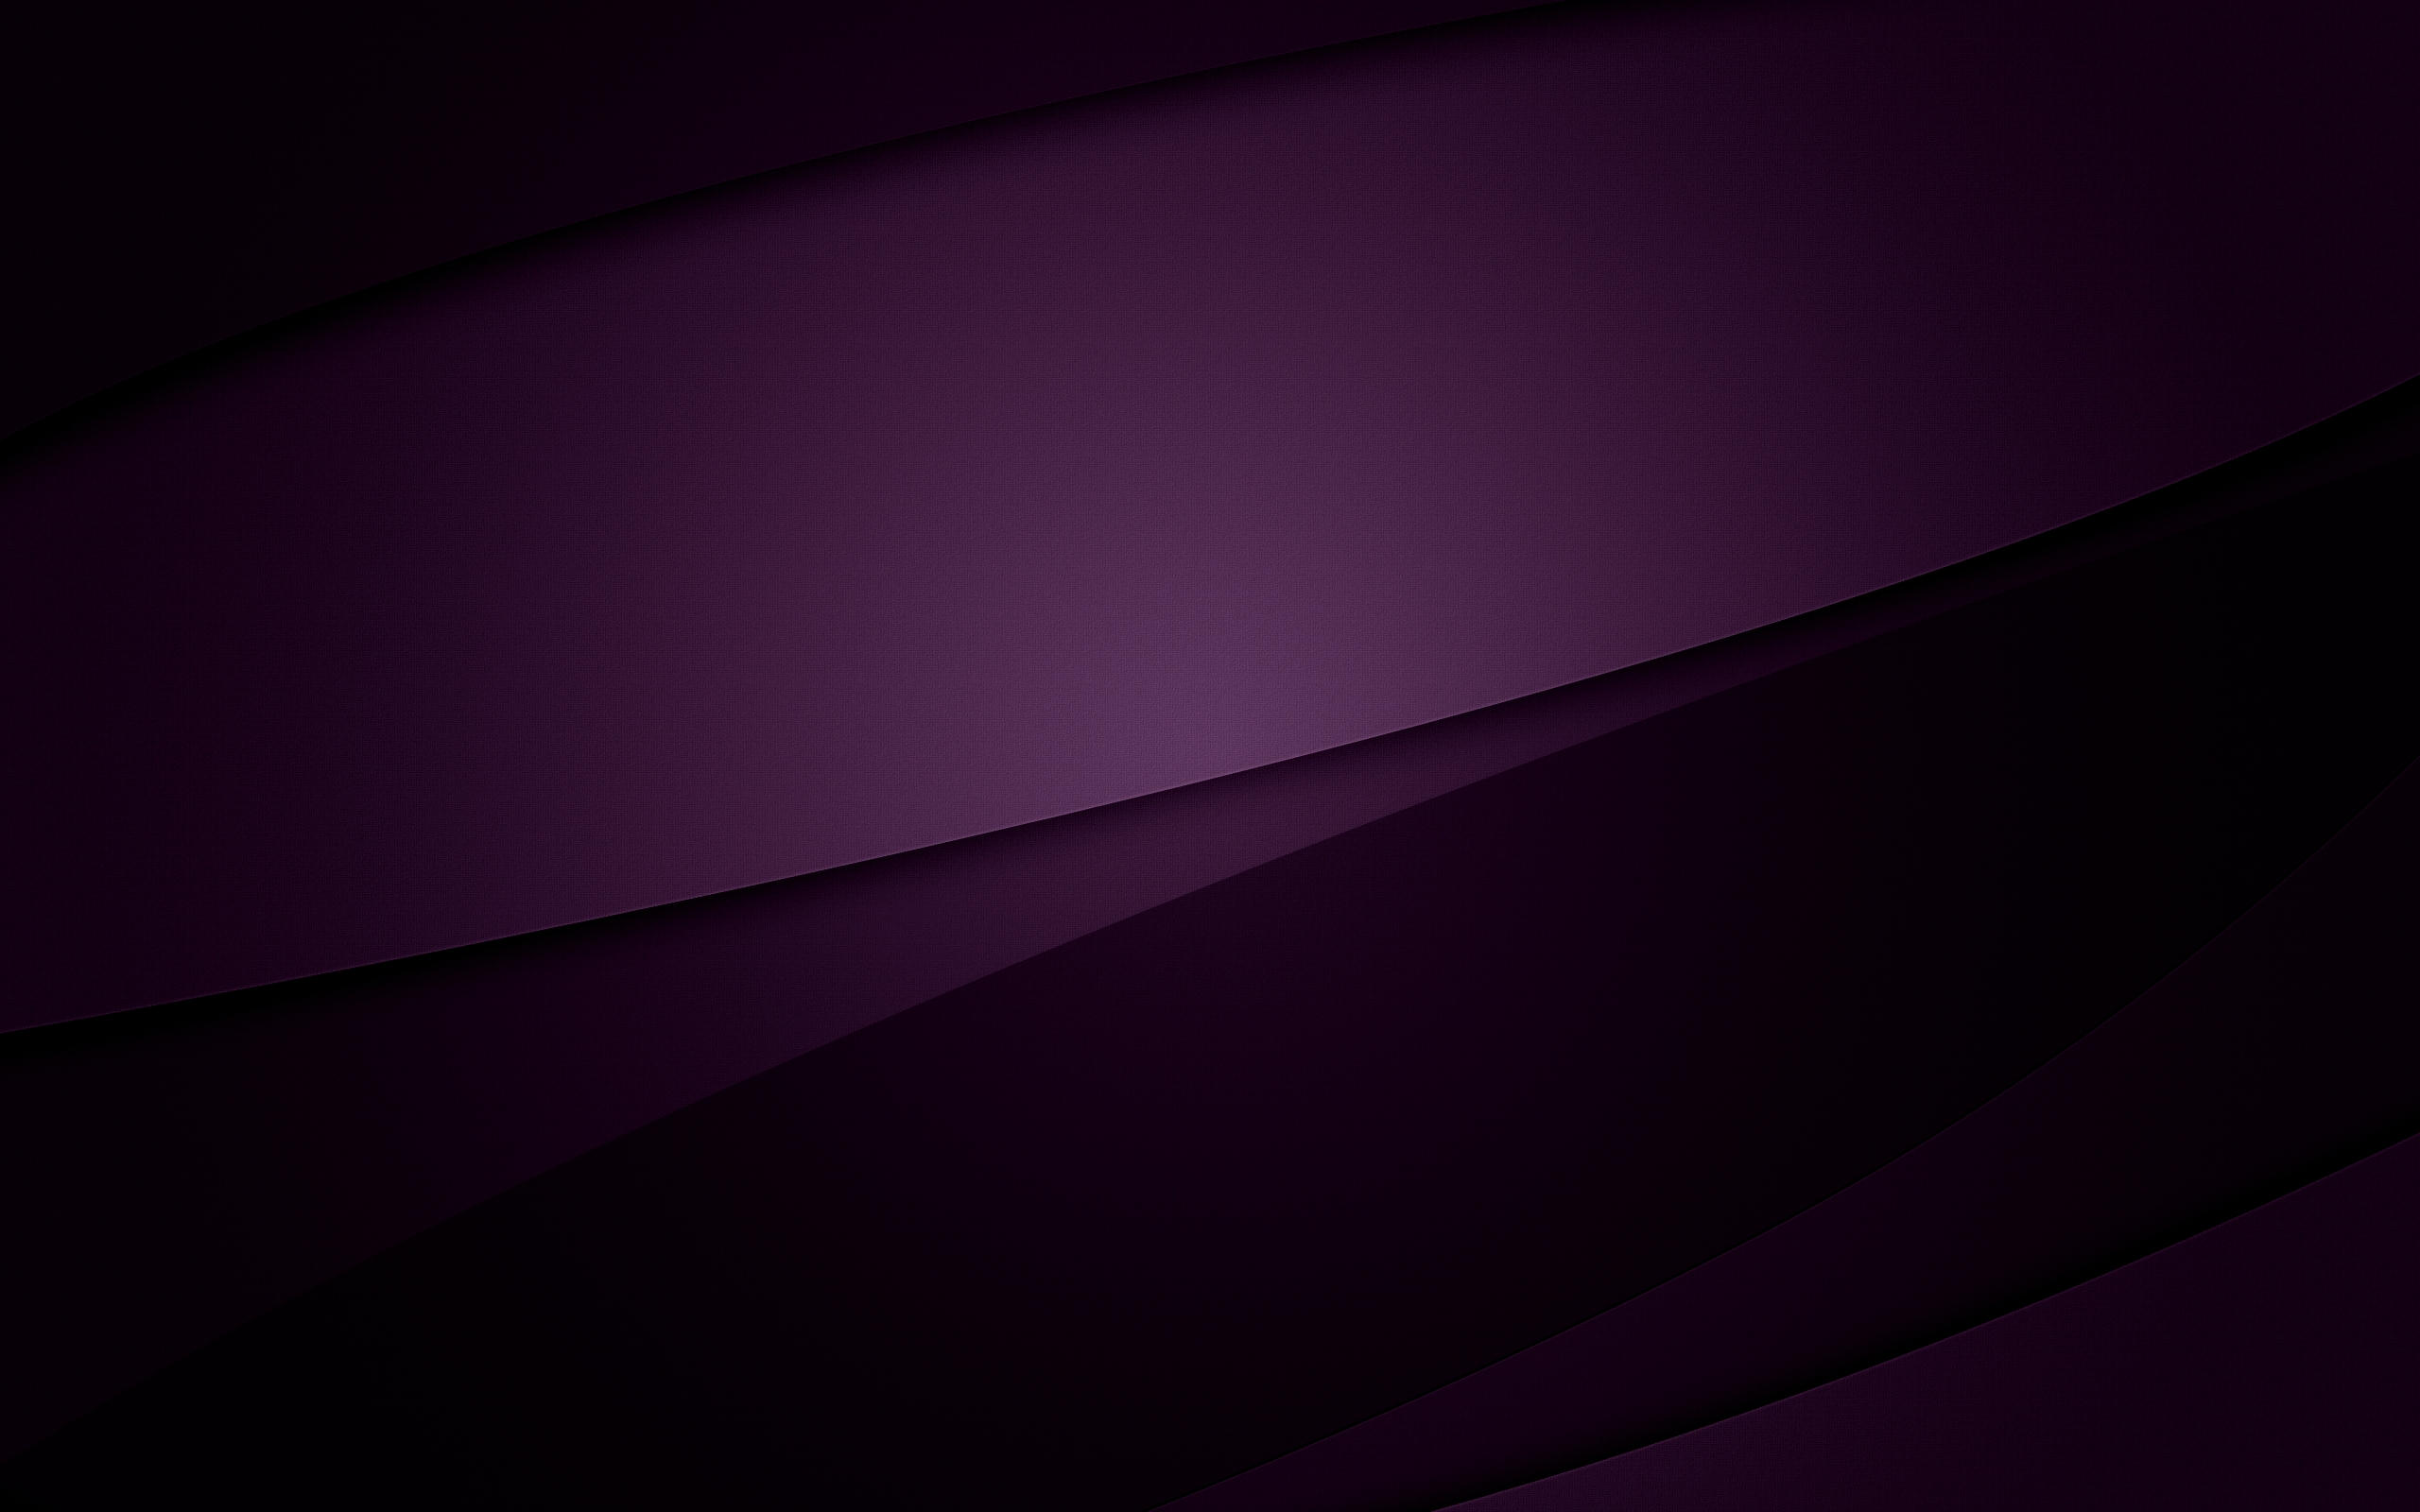 Abstract Purple Wallpaper 2560x1600 Abstract Purple Curves 2560x1600